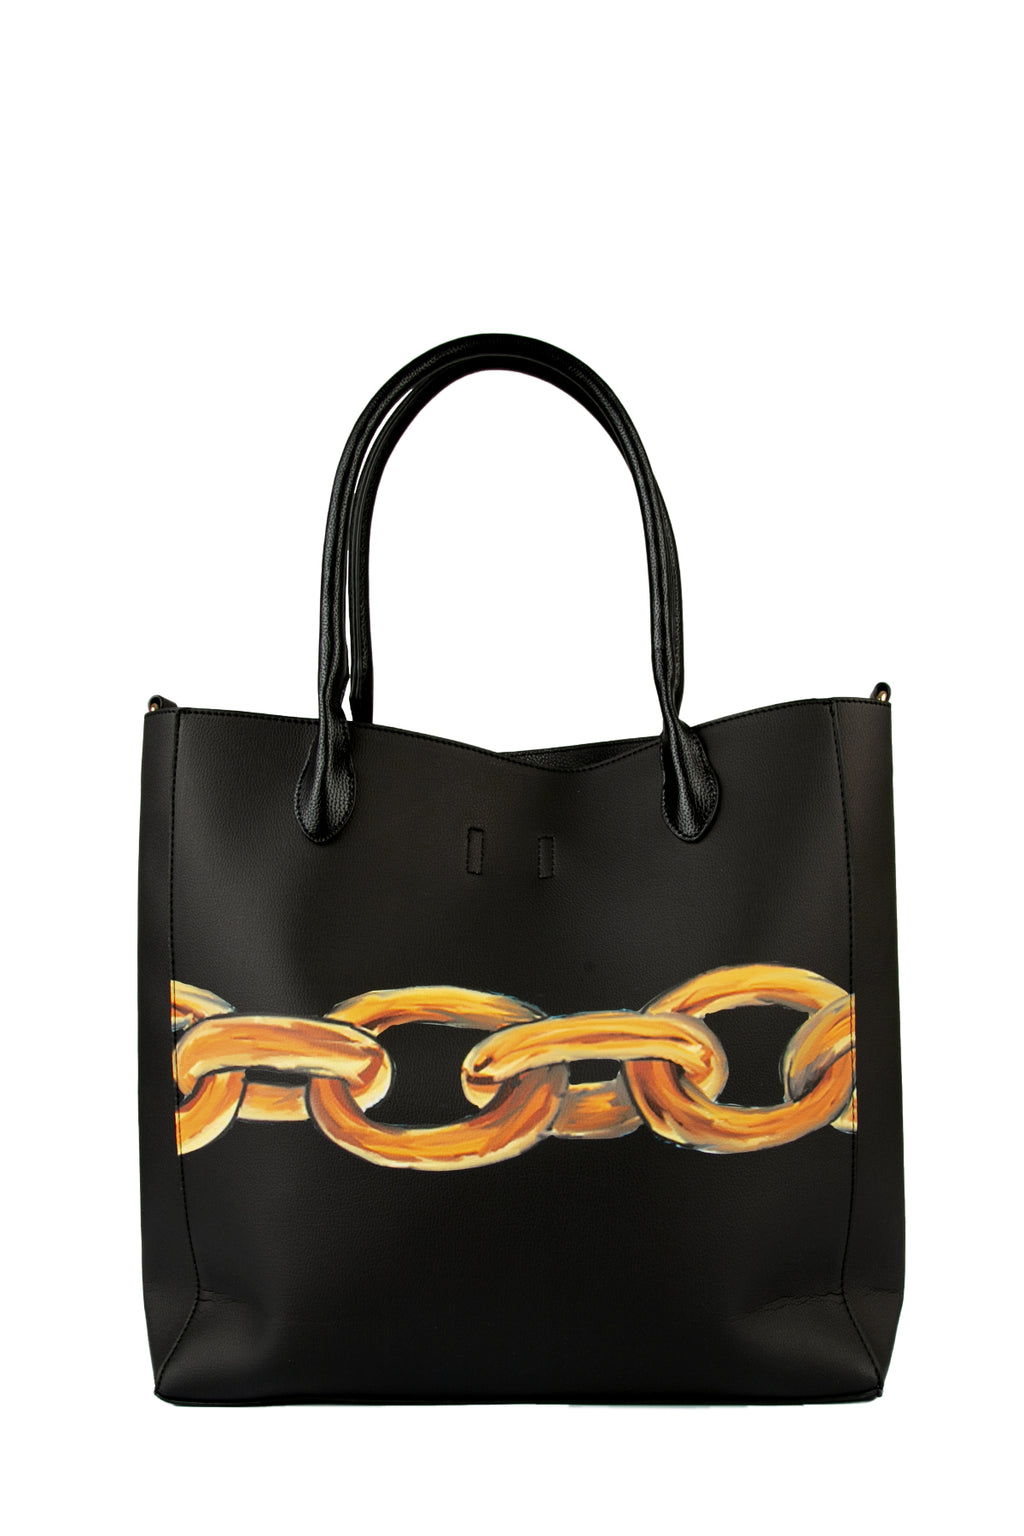 COOP MONEY TOTE